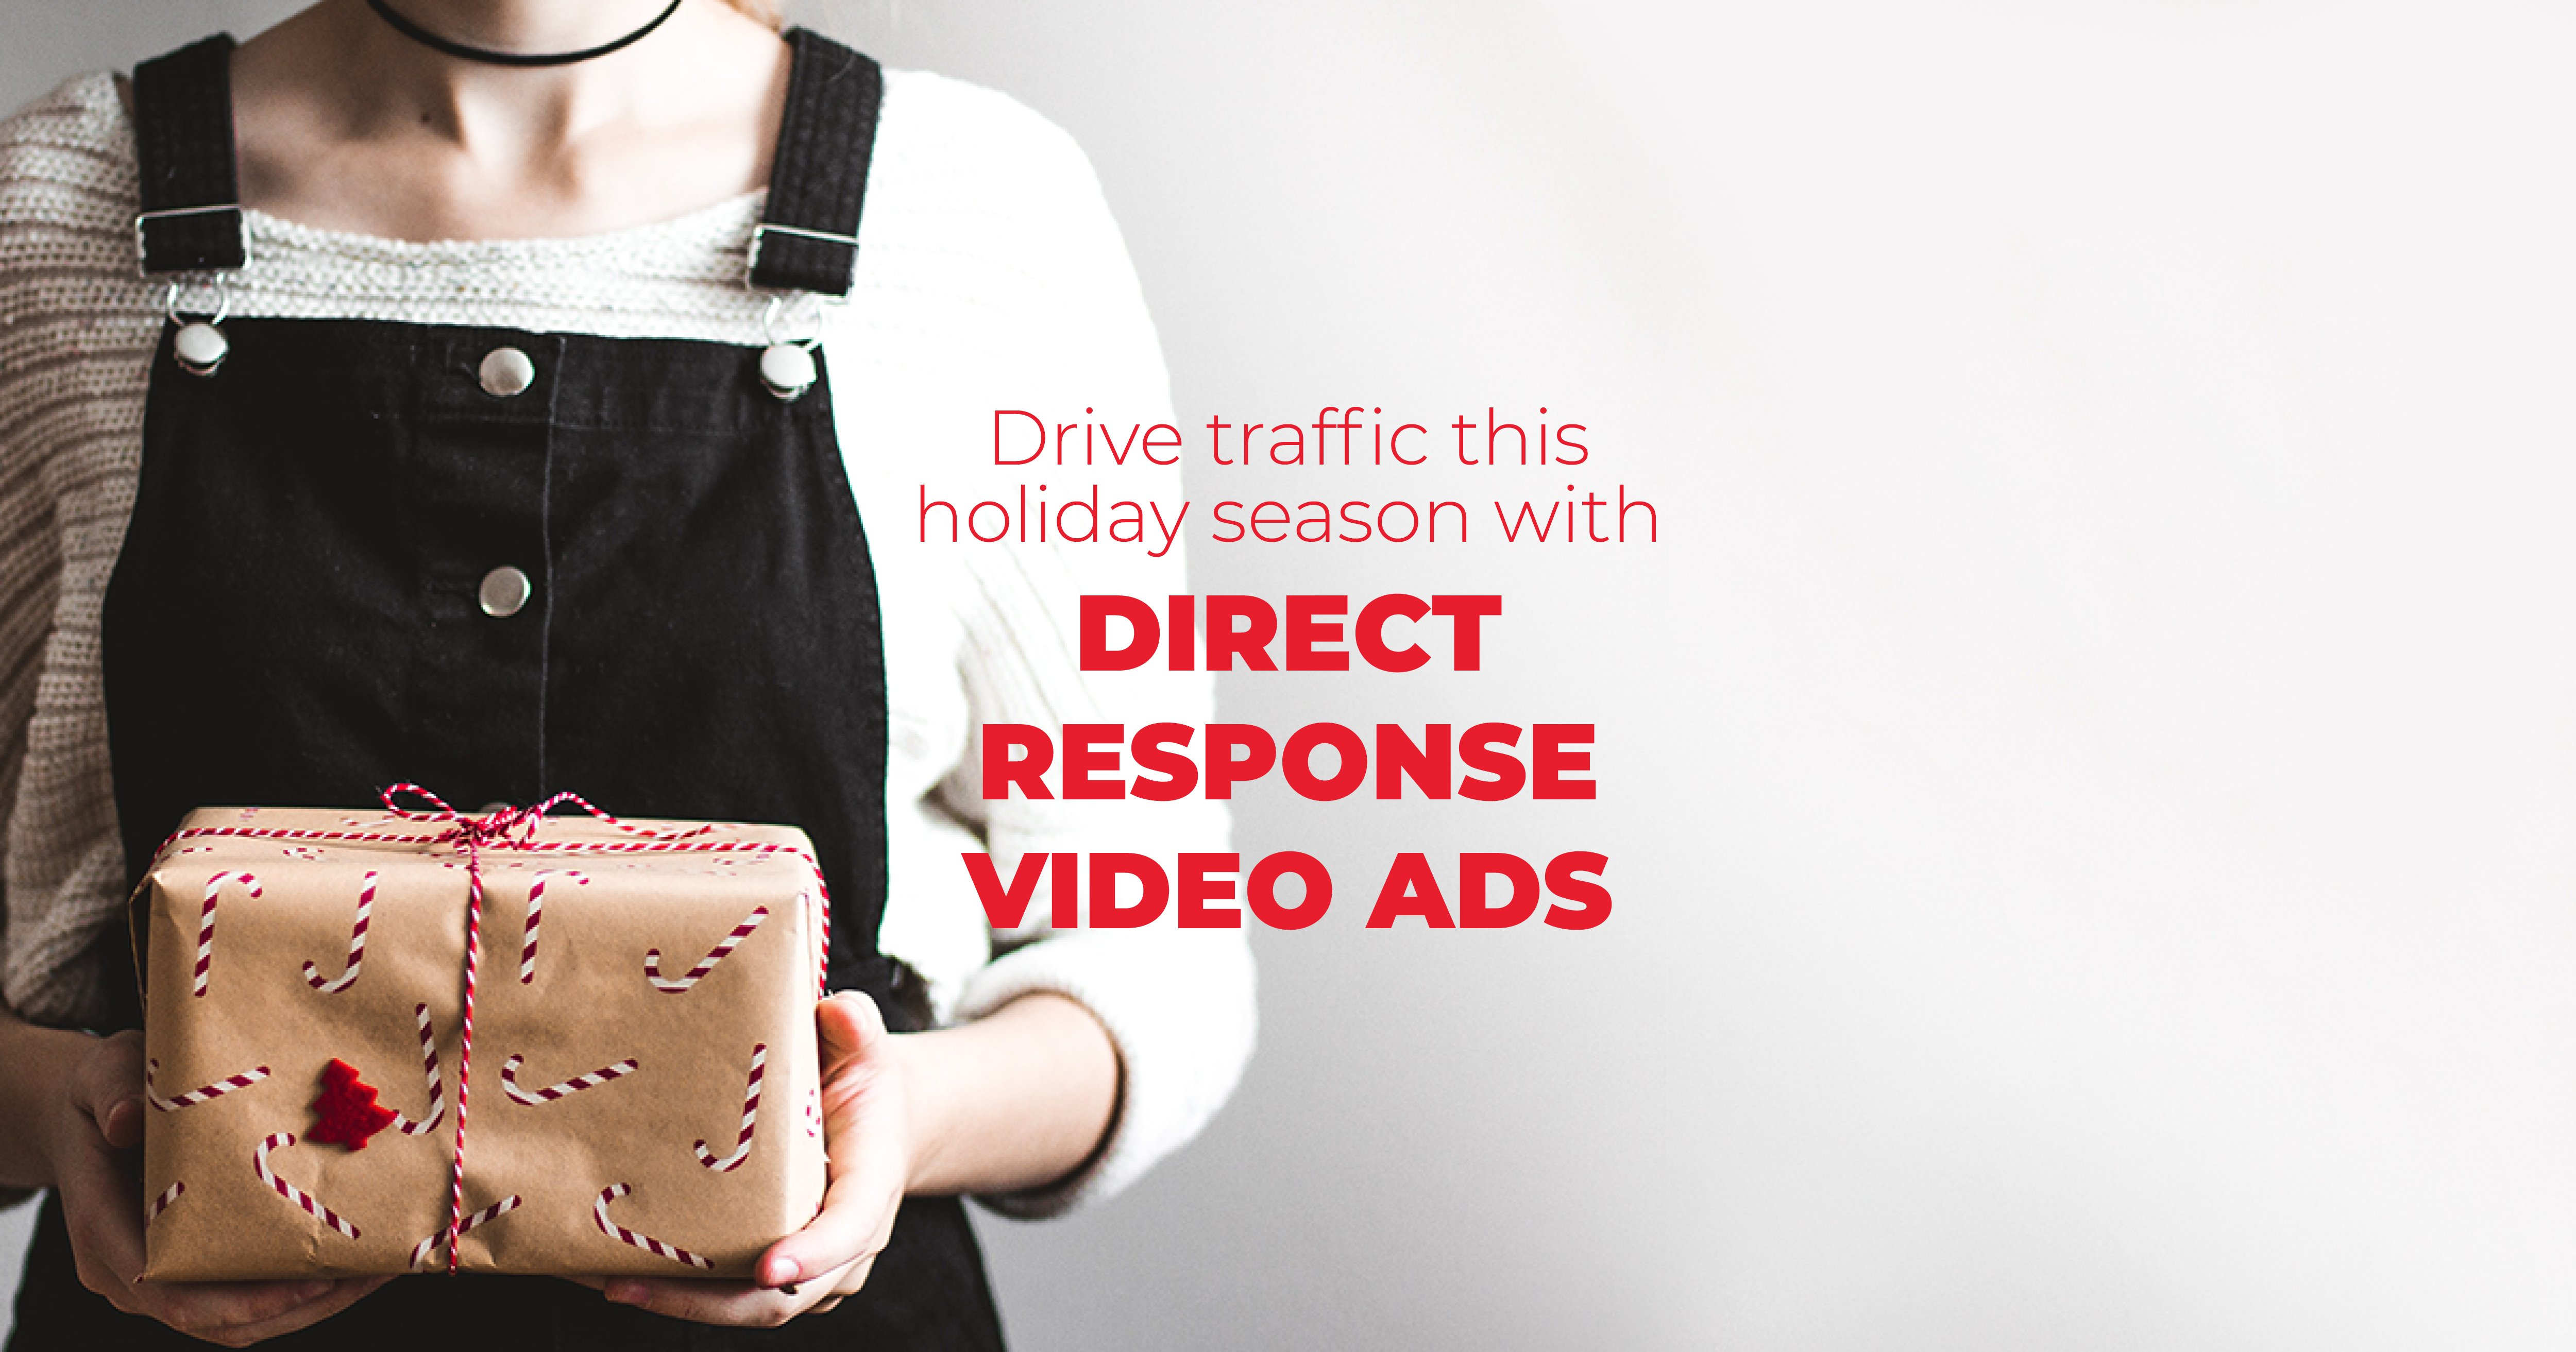 Drive Traffic This Holiday Season Using Direct Response Video Ads